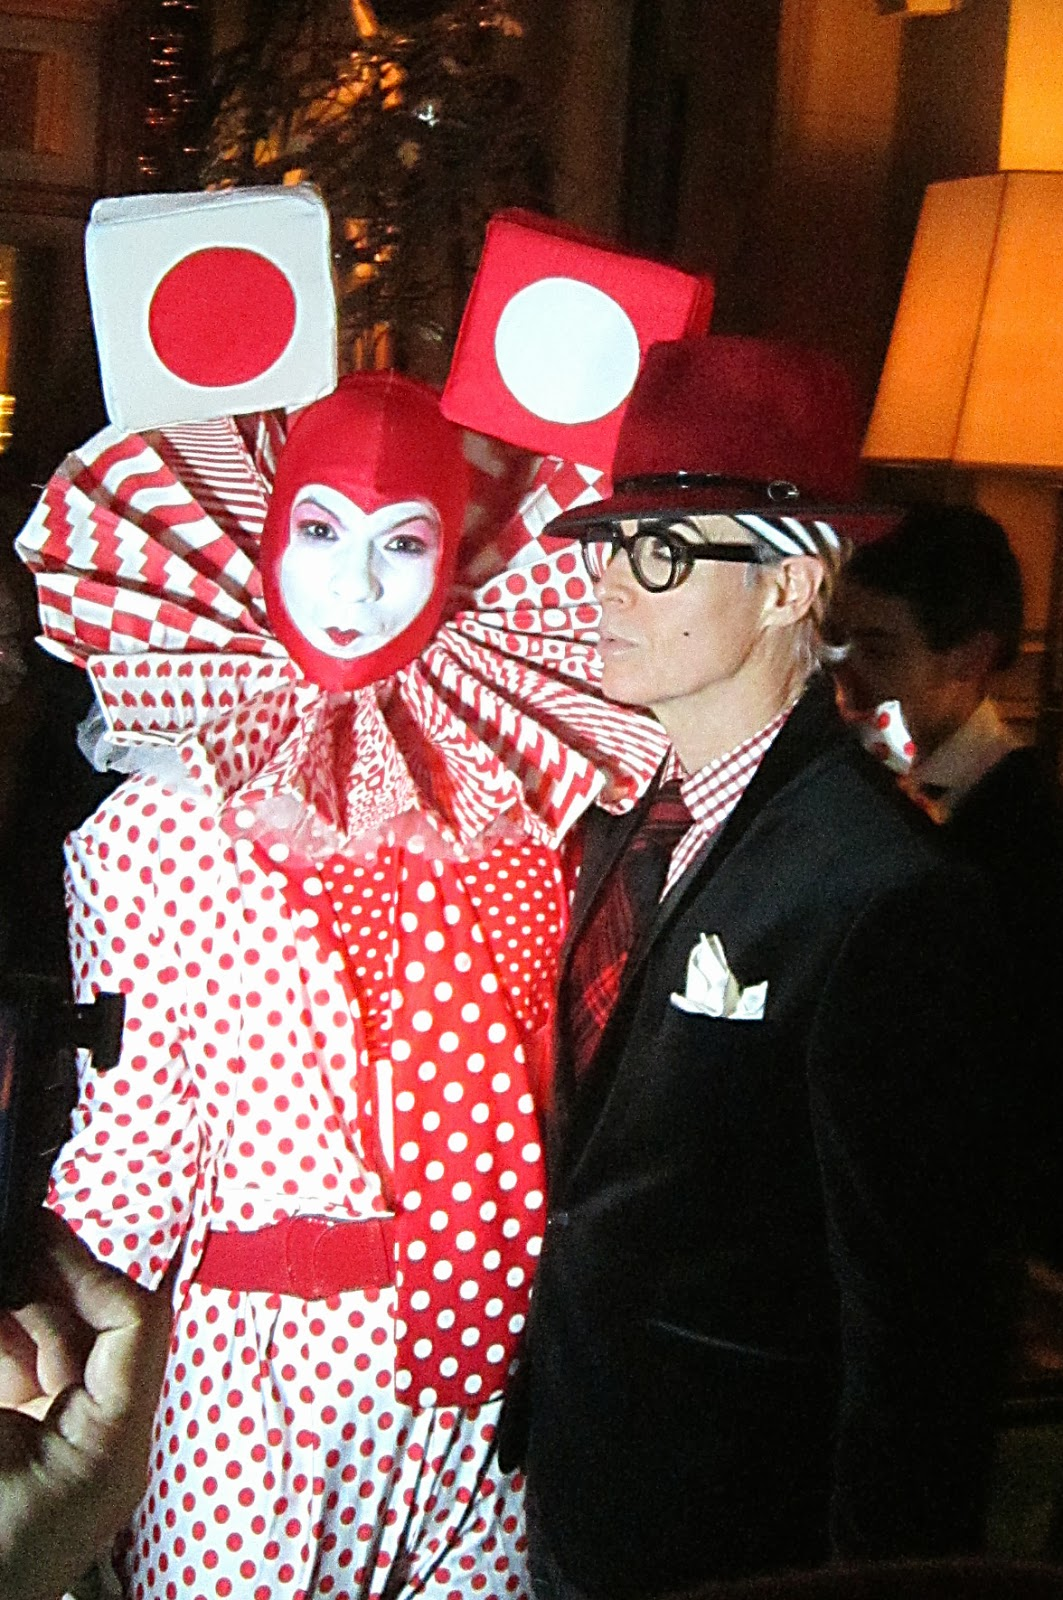 Black And White Toys For Tots : Idiosyncratic fashionistas toys for tots like you ve